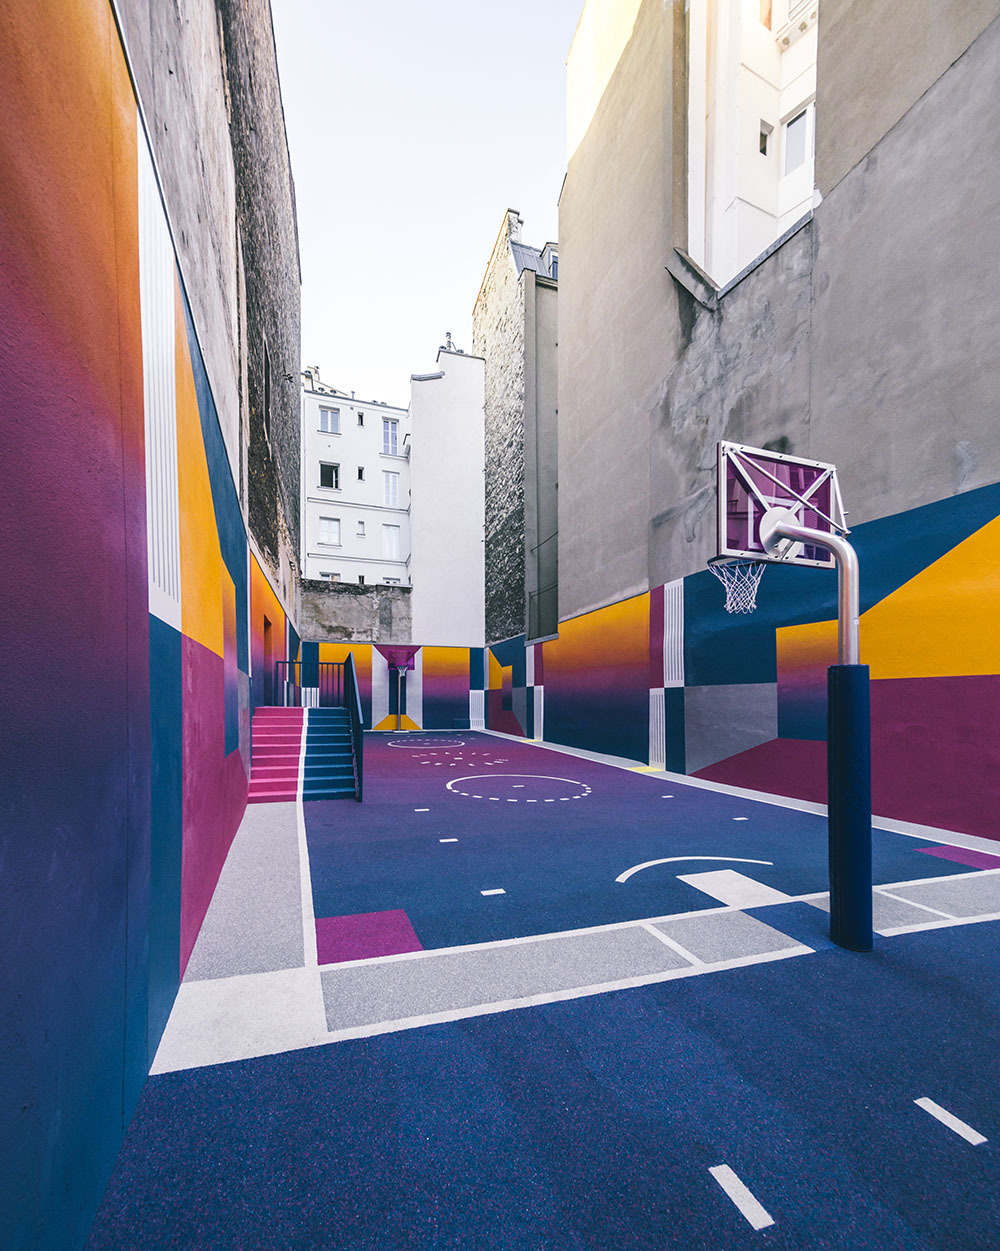 Alex_Penfornis-pigalle_ill_studio_nike_paris_duperre_basketball_court_itsnicethat1.jpg